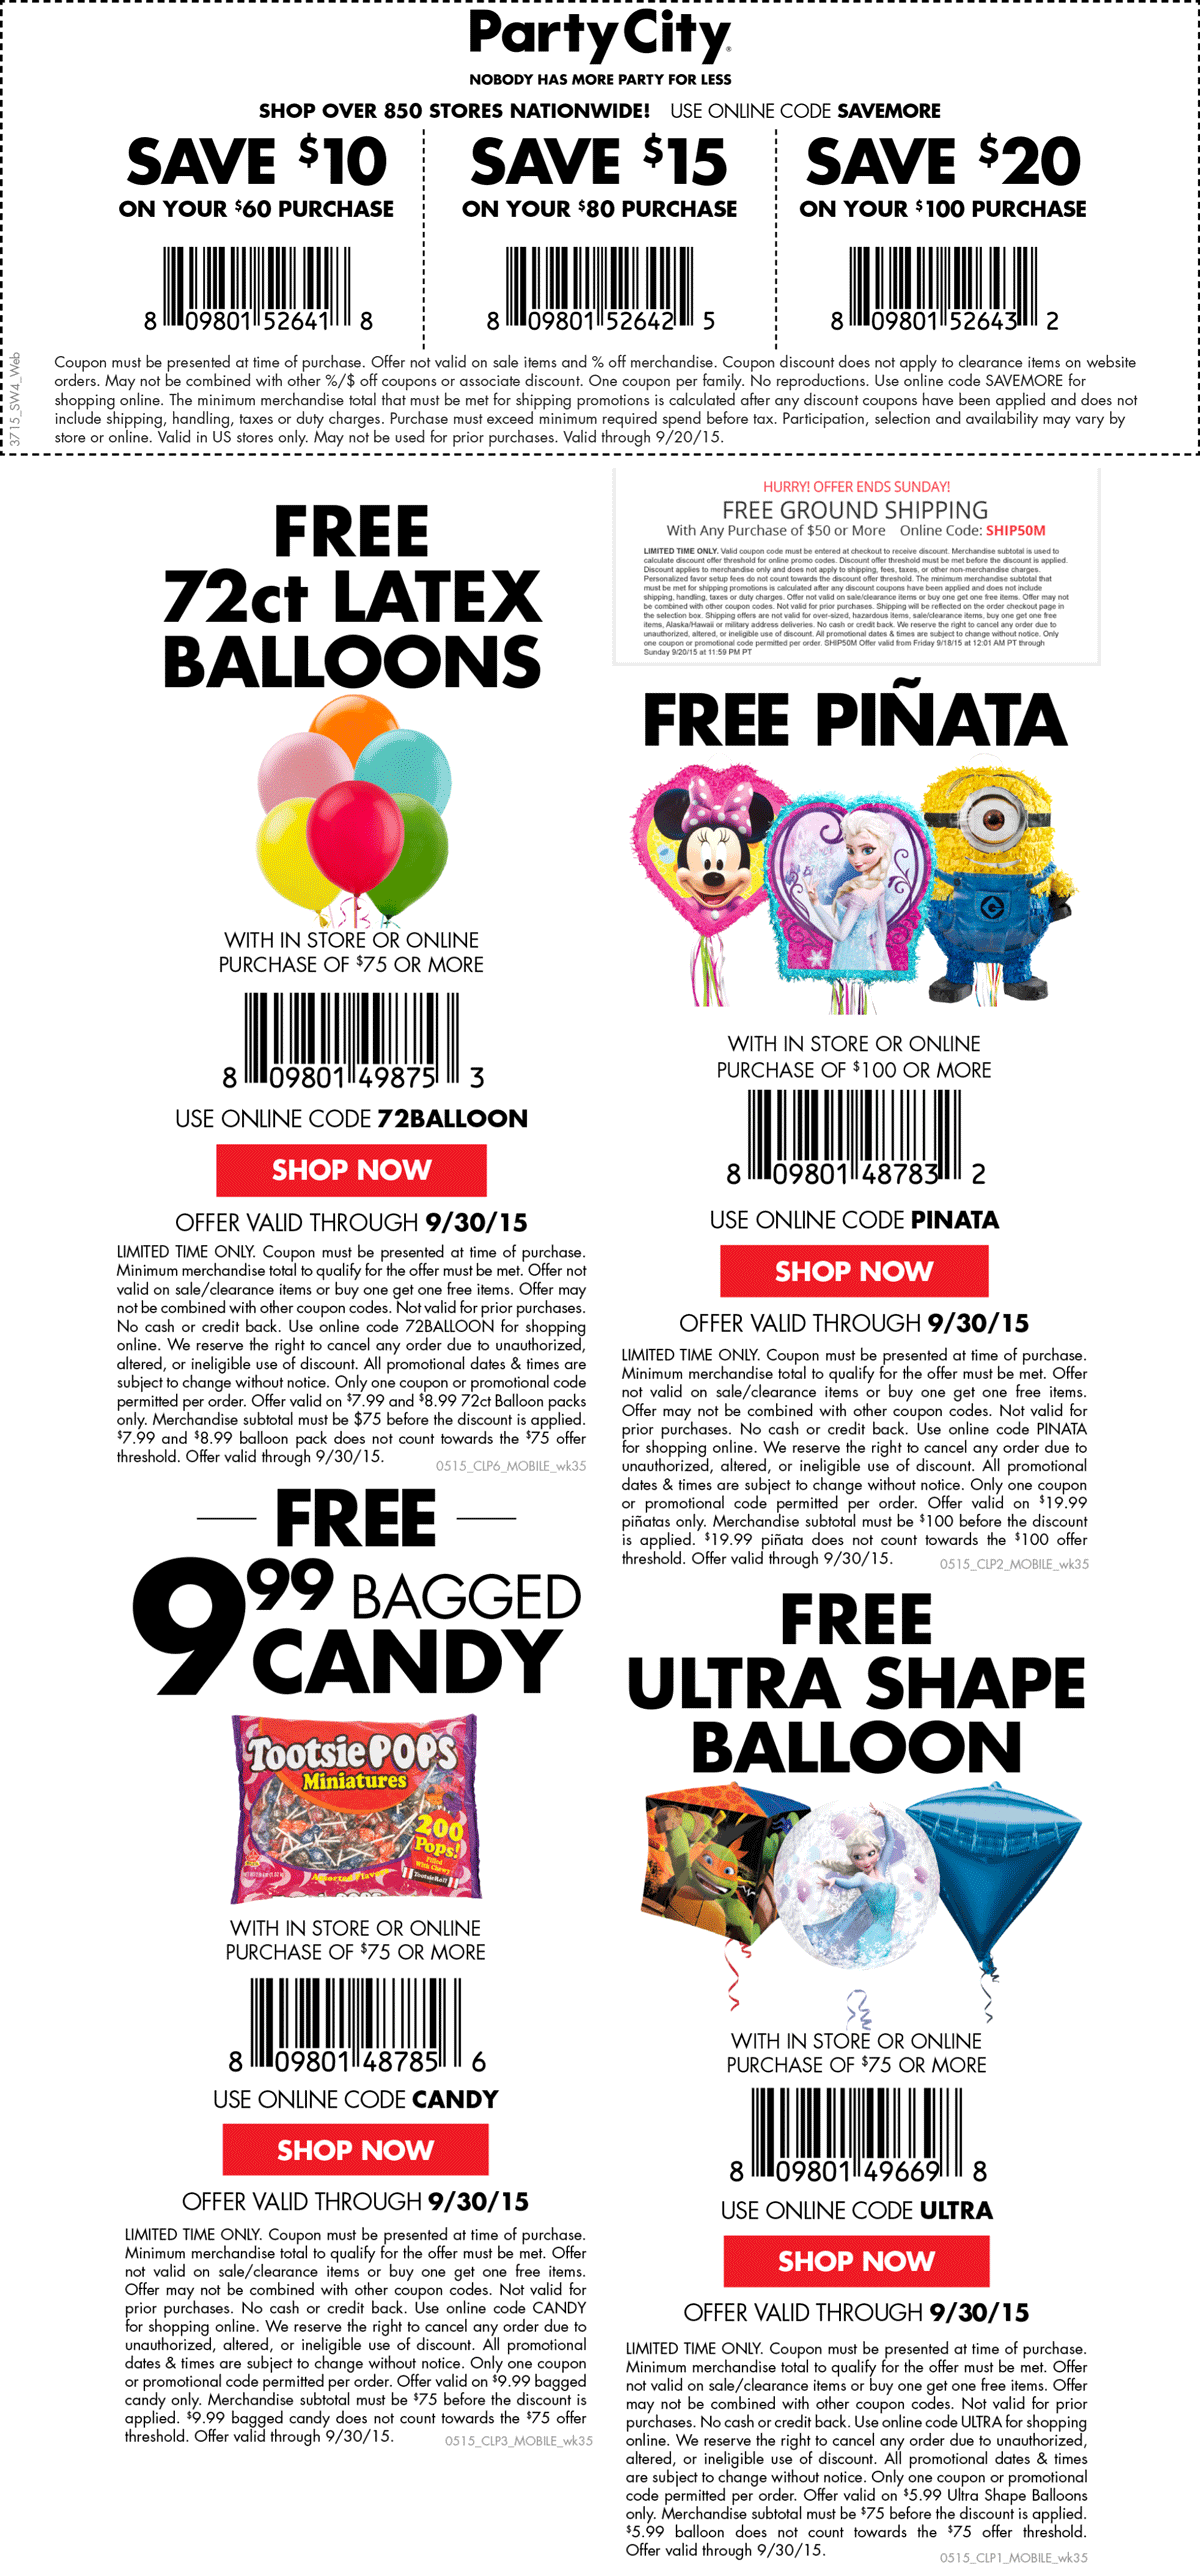 Party City Coupon January 2018 $10 off $60 + various freebies at Party City, or online via promo code SAVEMORE